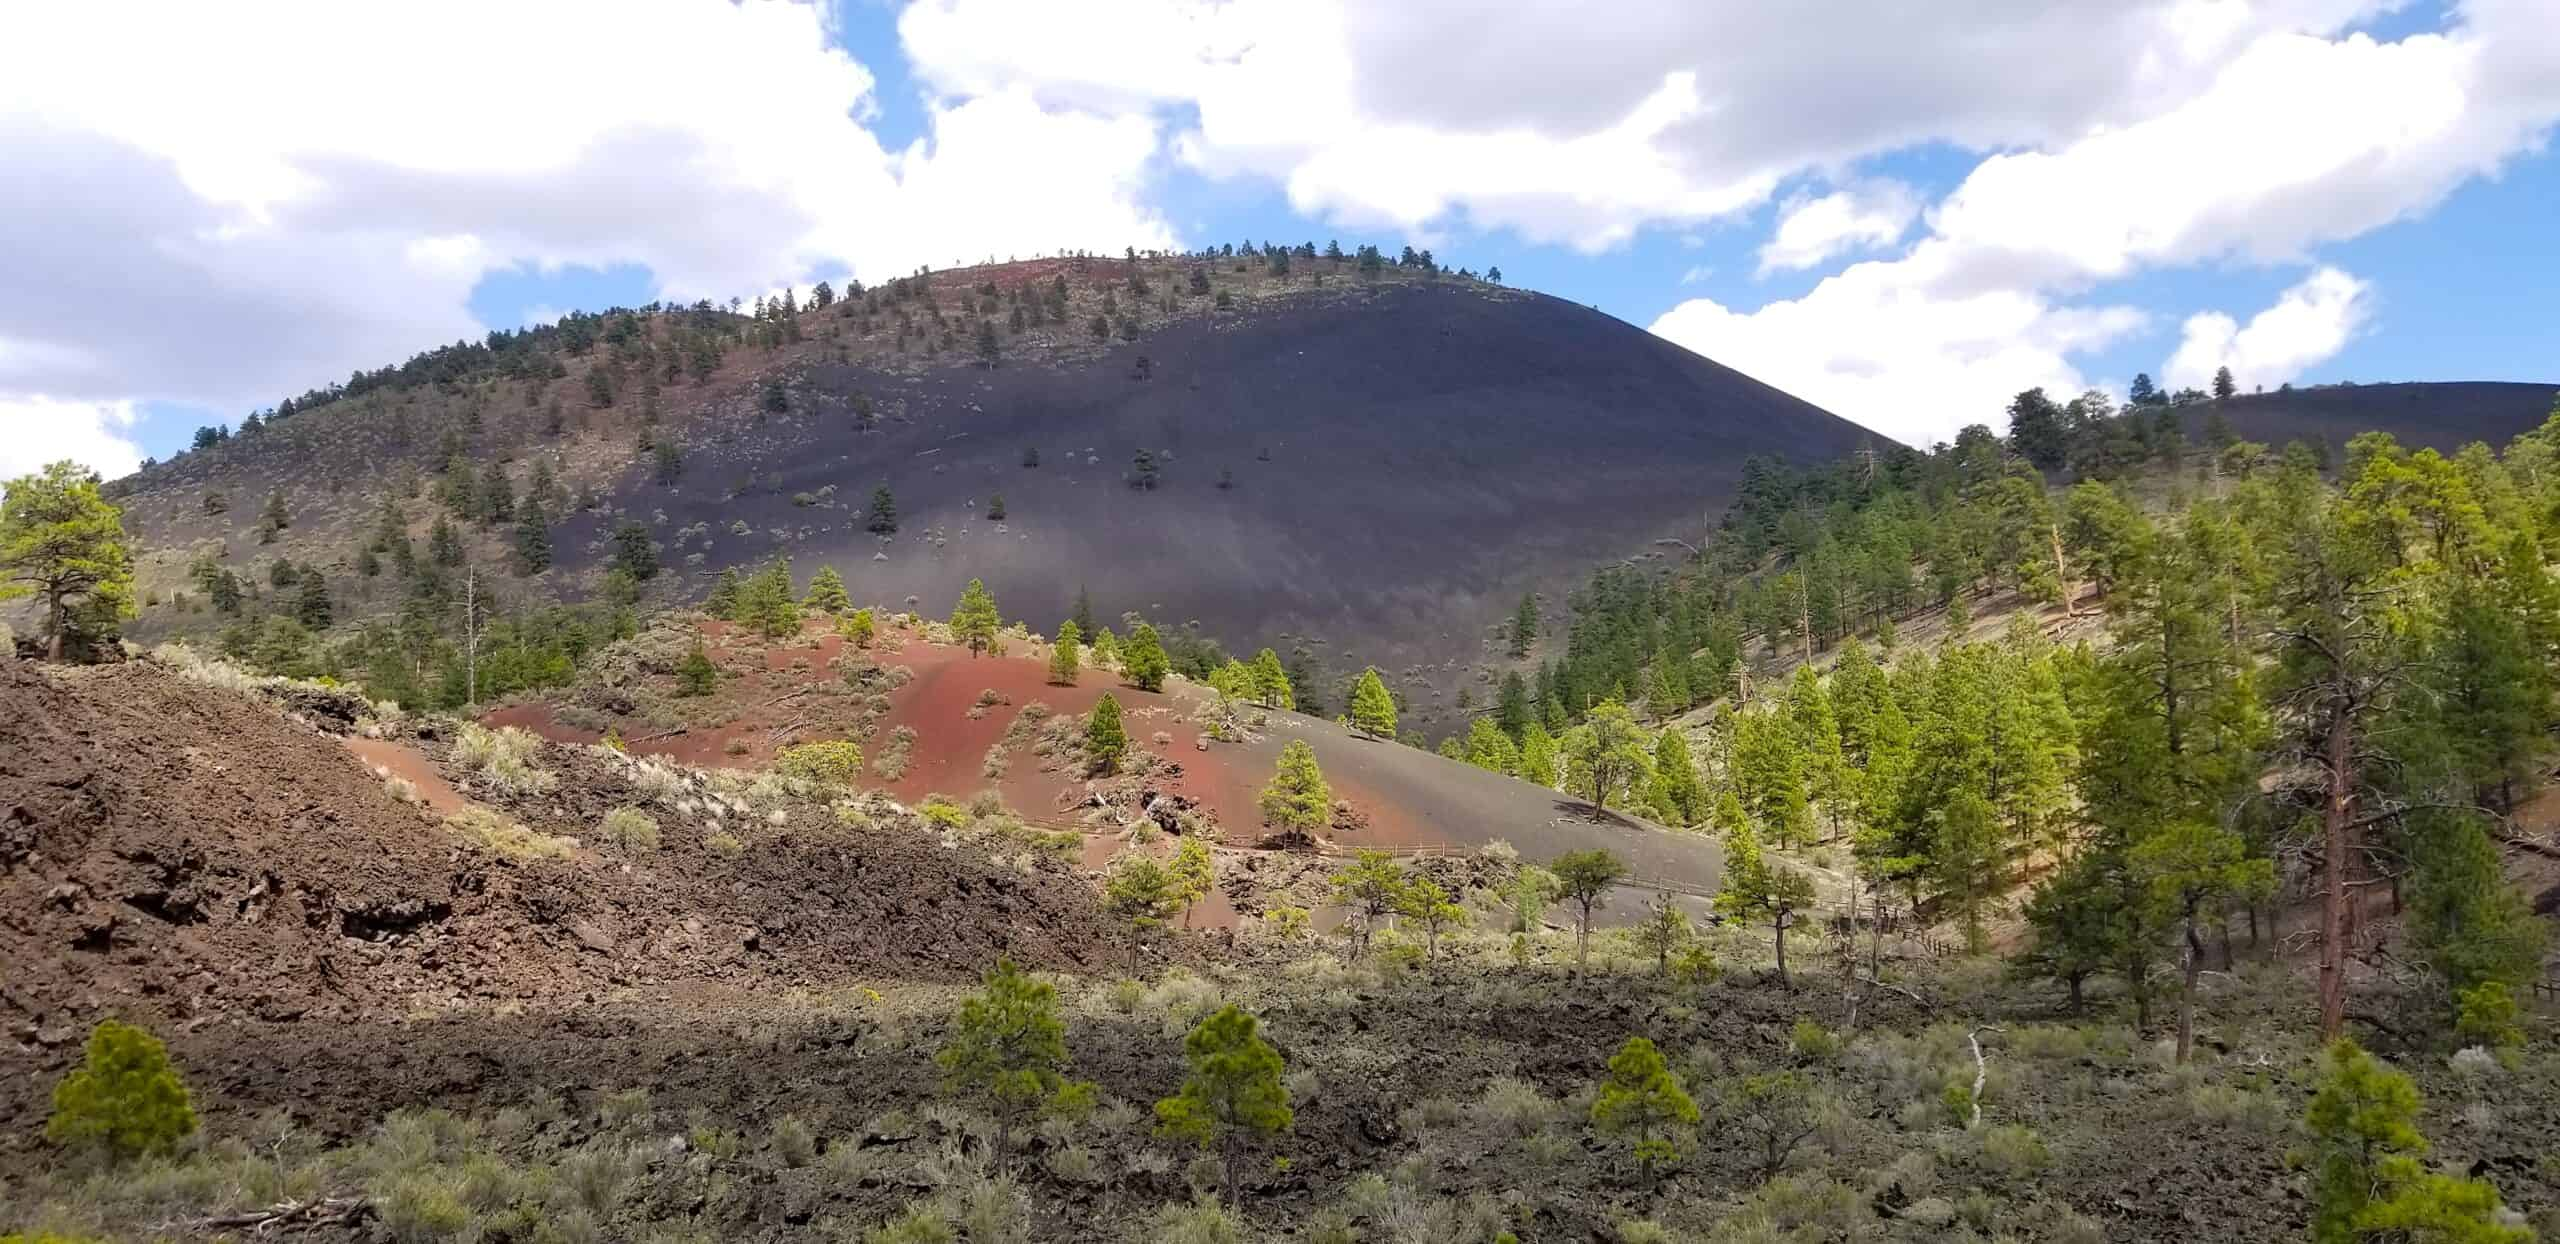 scenic view of a volcano at Sunset Crater National Monument